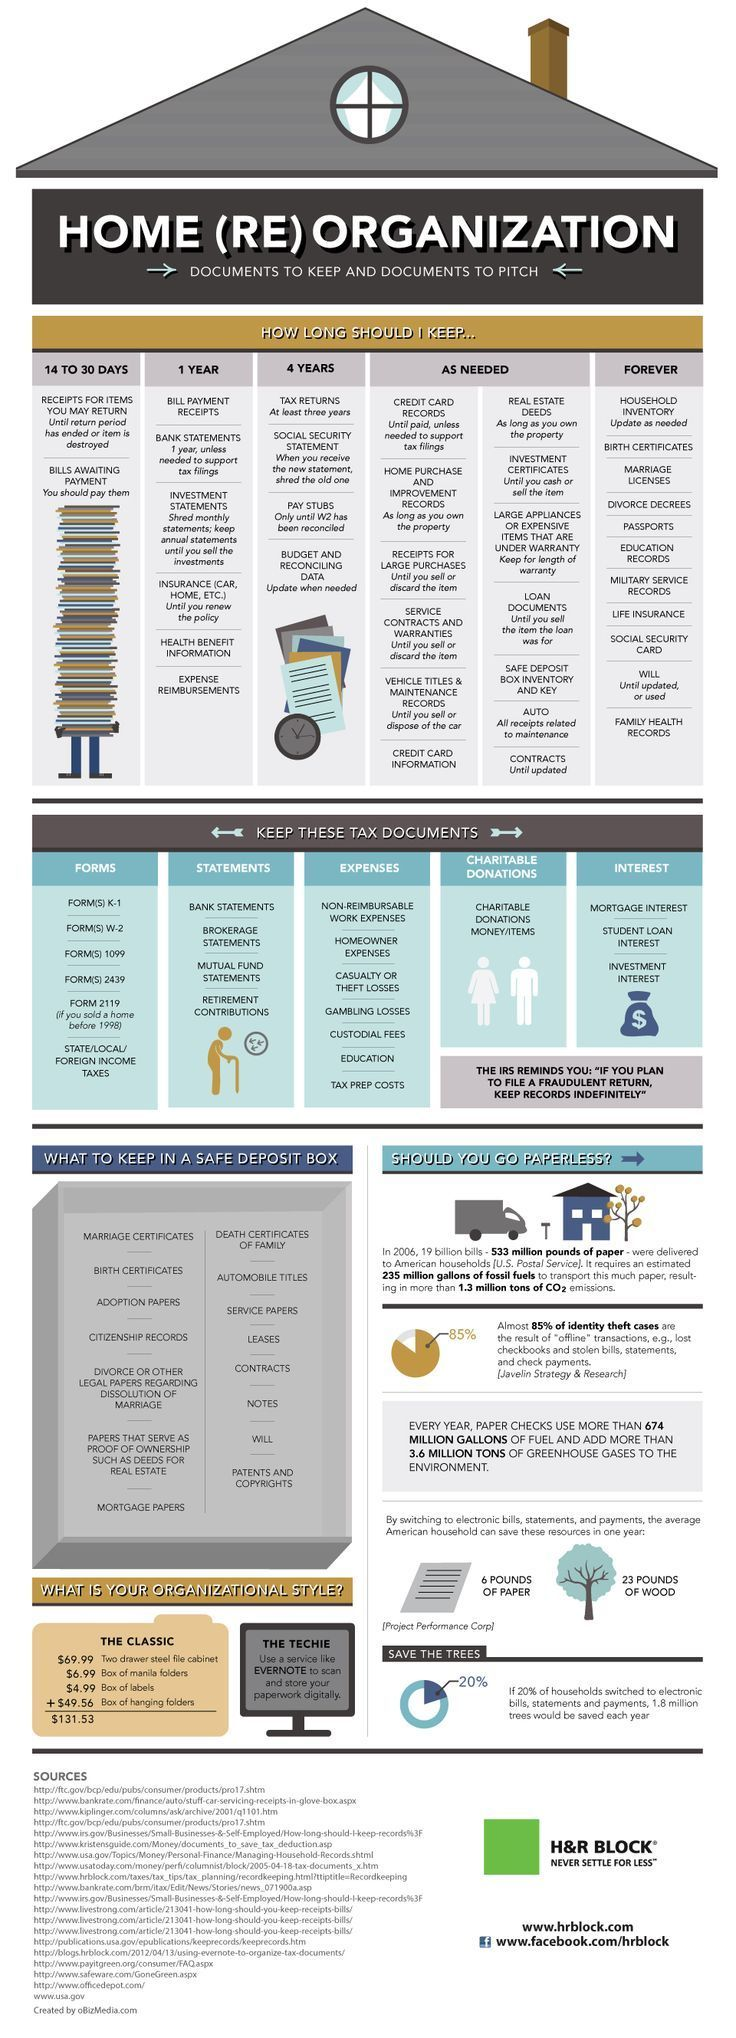 Home ReOrganization, An Infographic by H&R Block Home ReOrganization Infographic